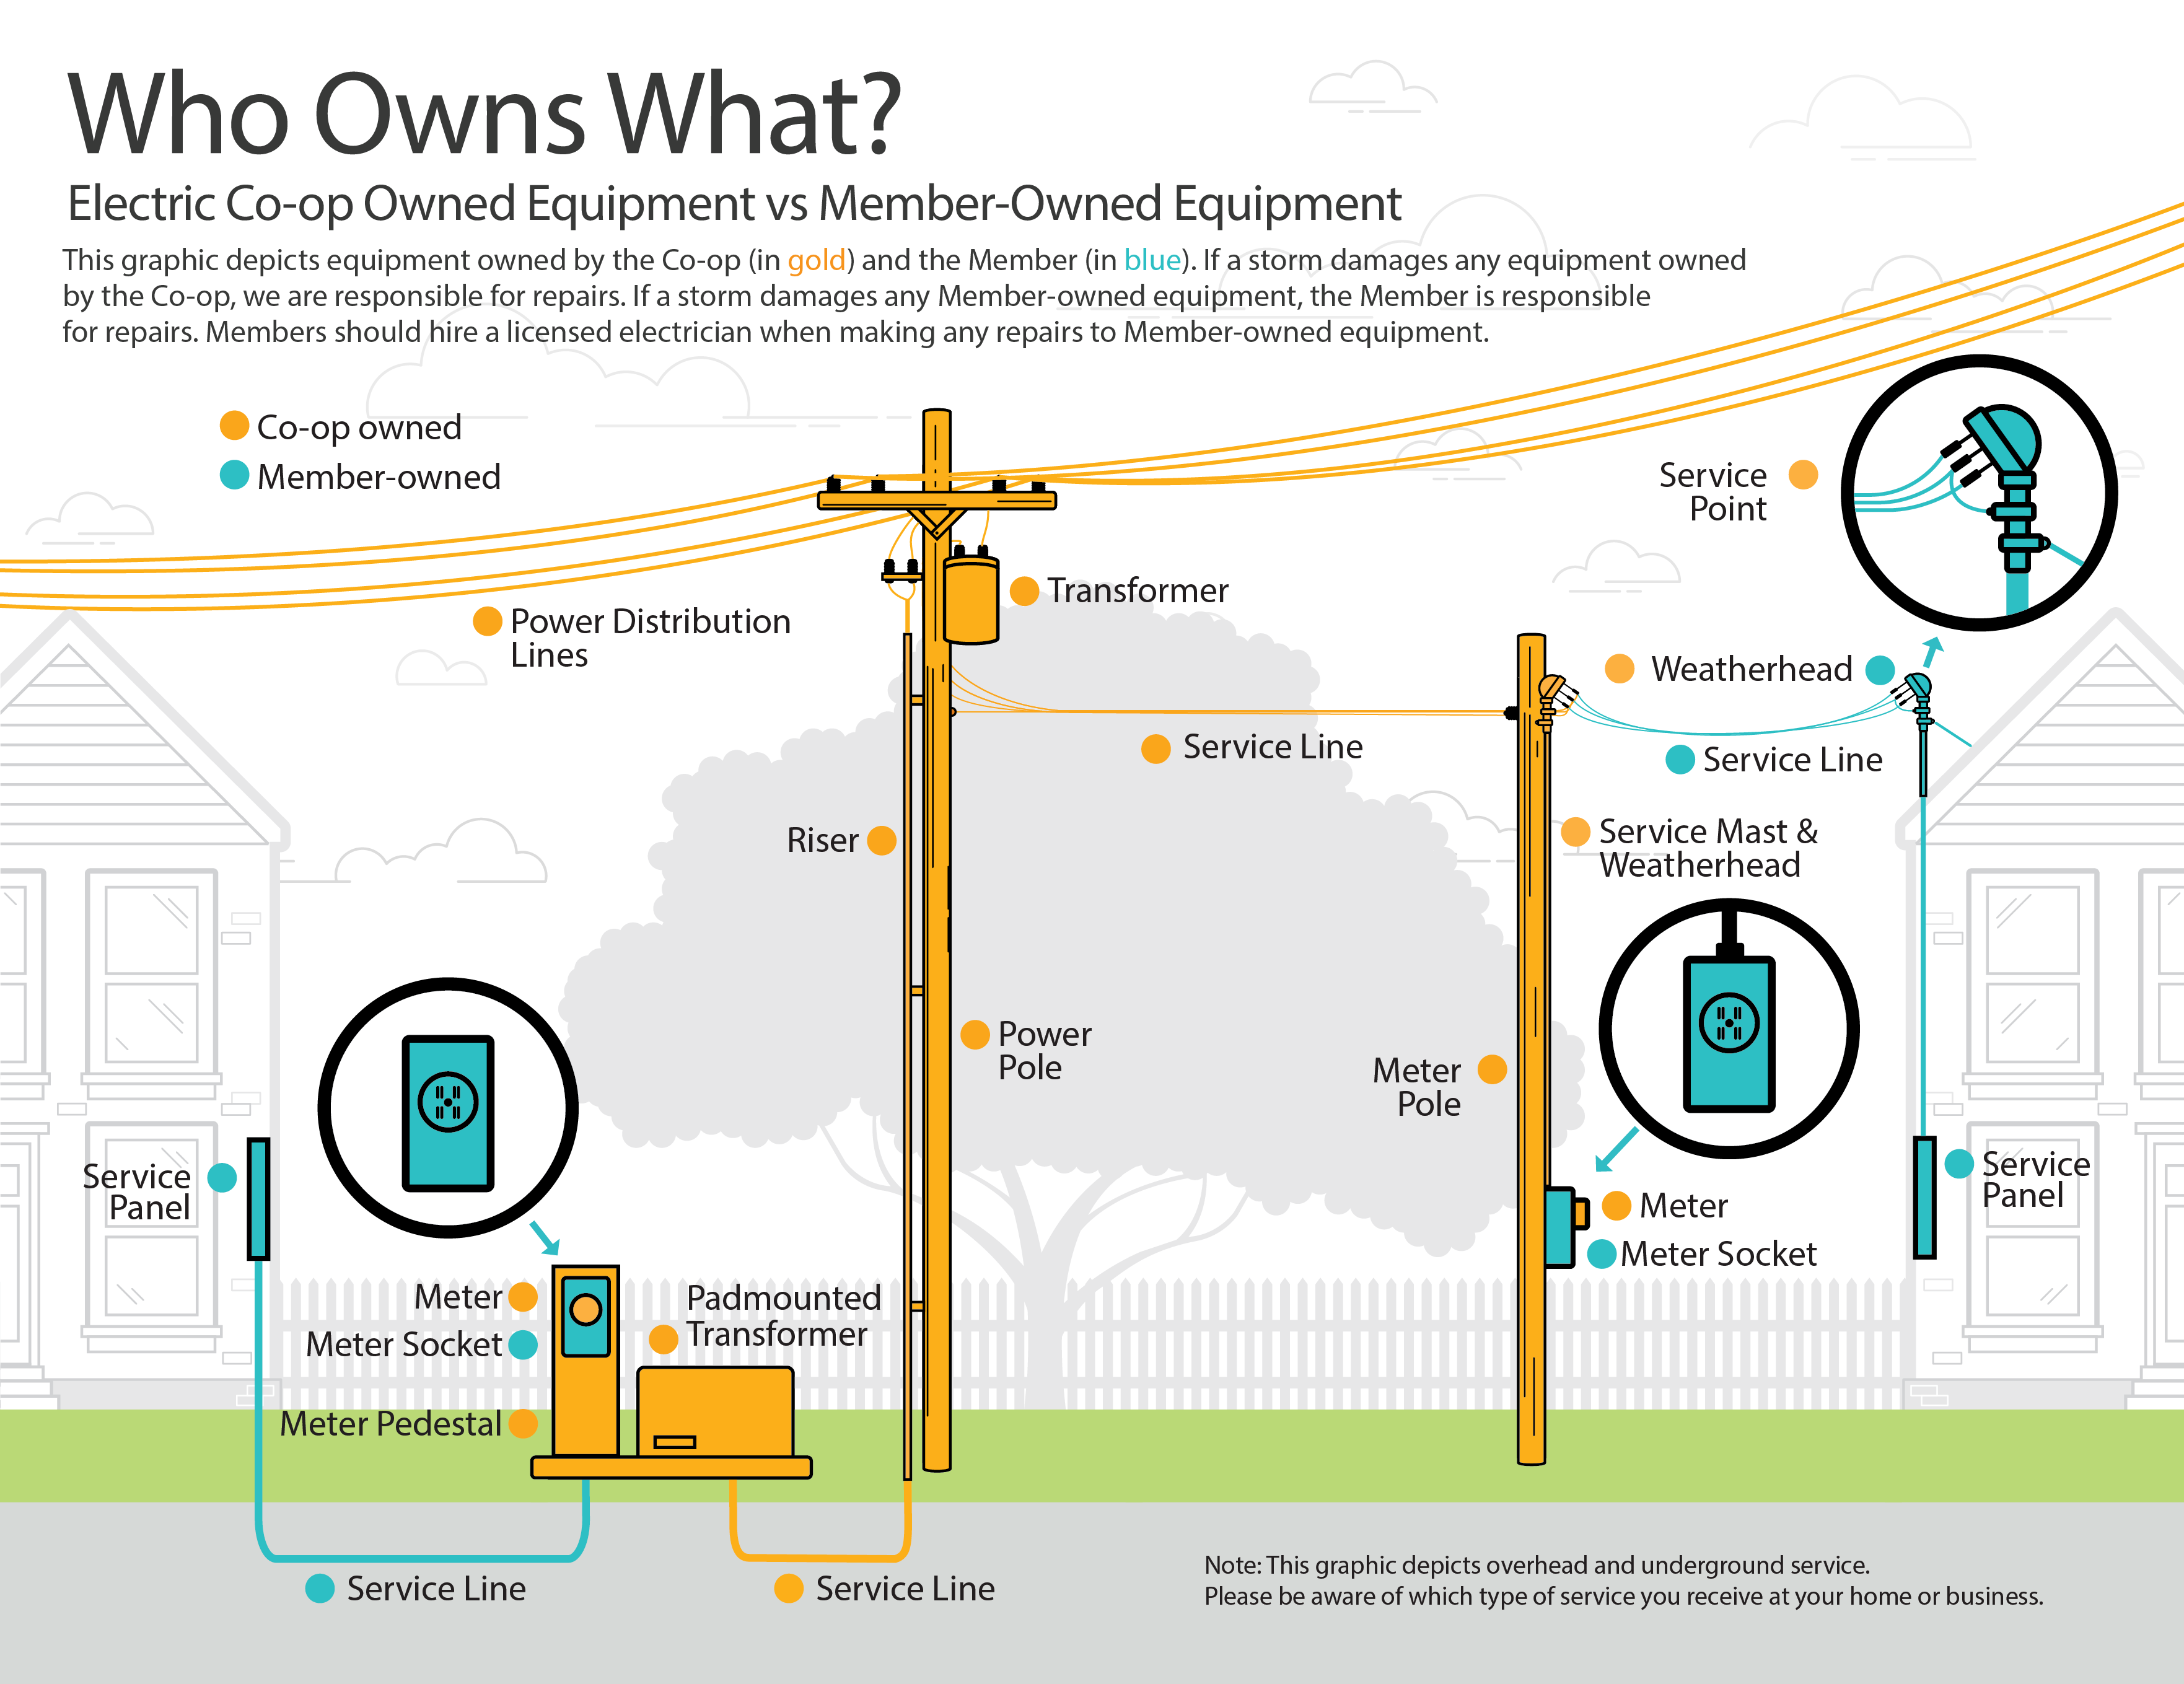 Who owns what electrical equipment graphic